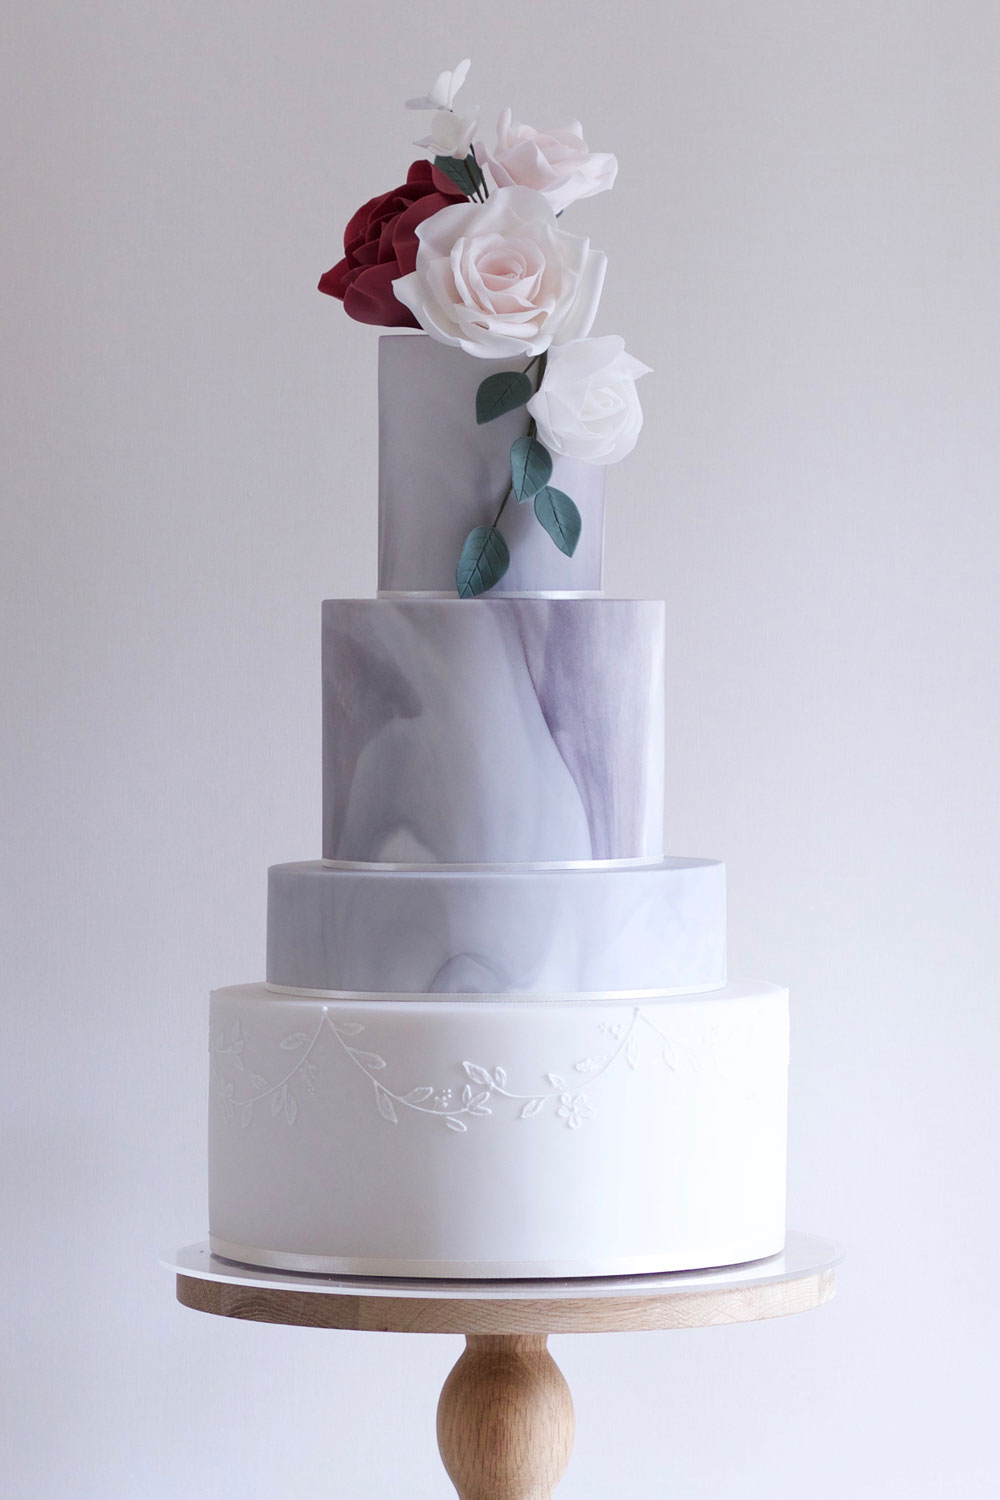 Wedding Cake Designer, Wedding Cake, Wedding Cake Inspiration, Wedding Cake Maker, Cake Maker